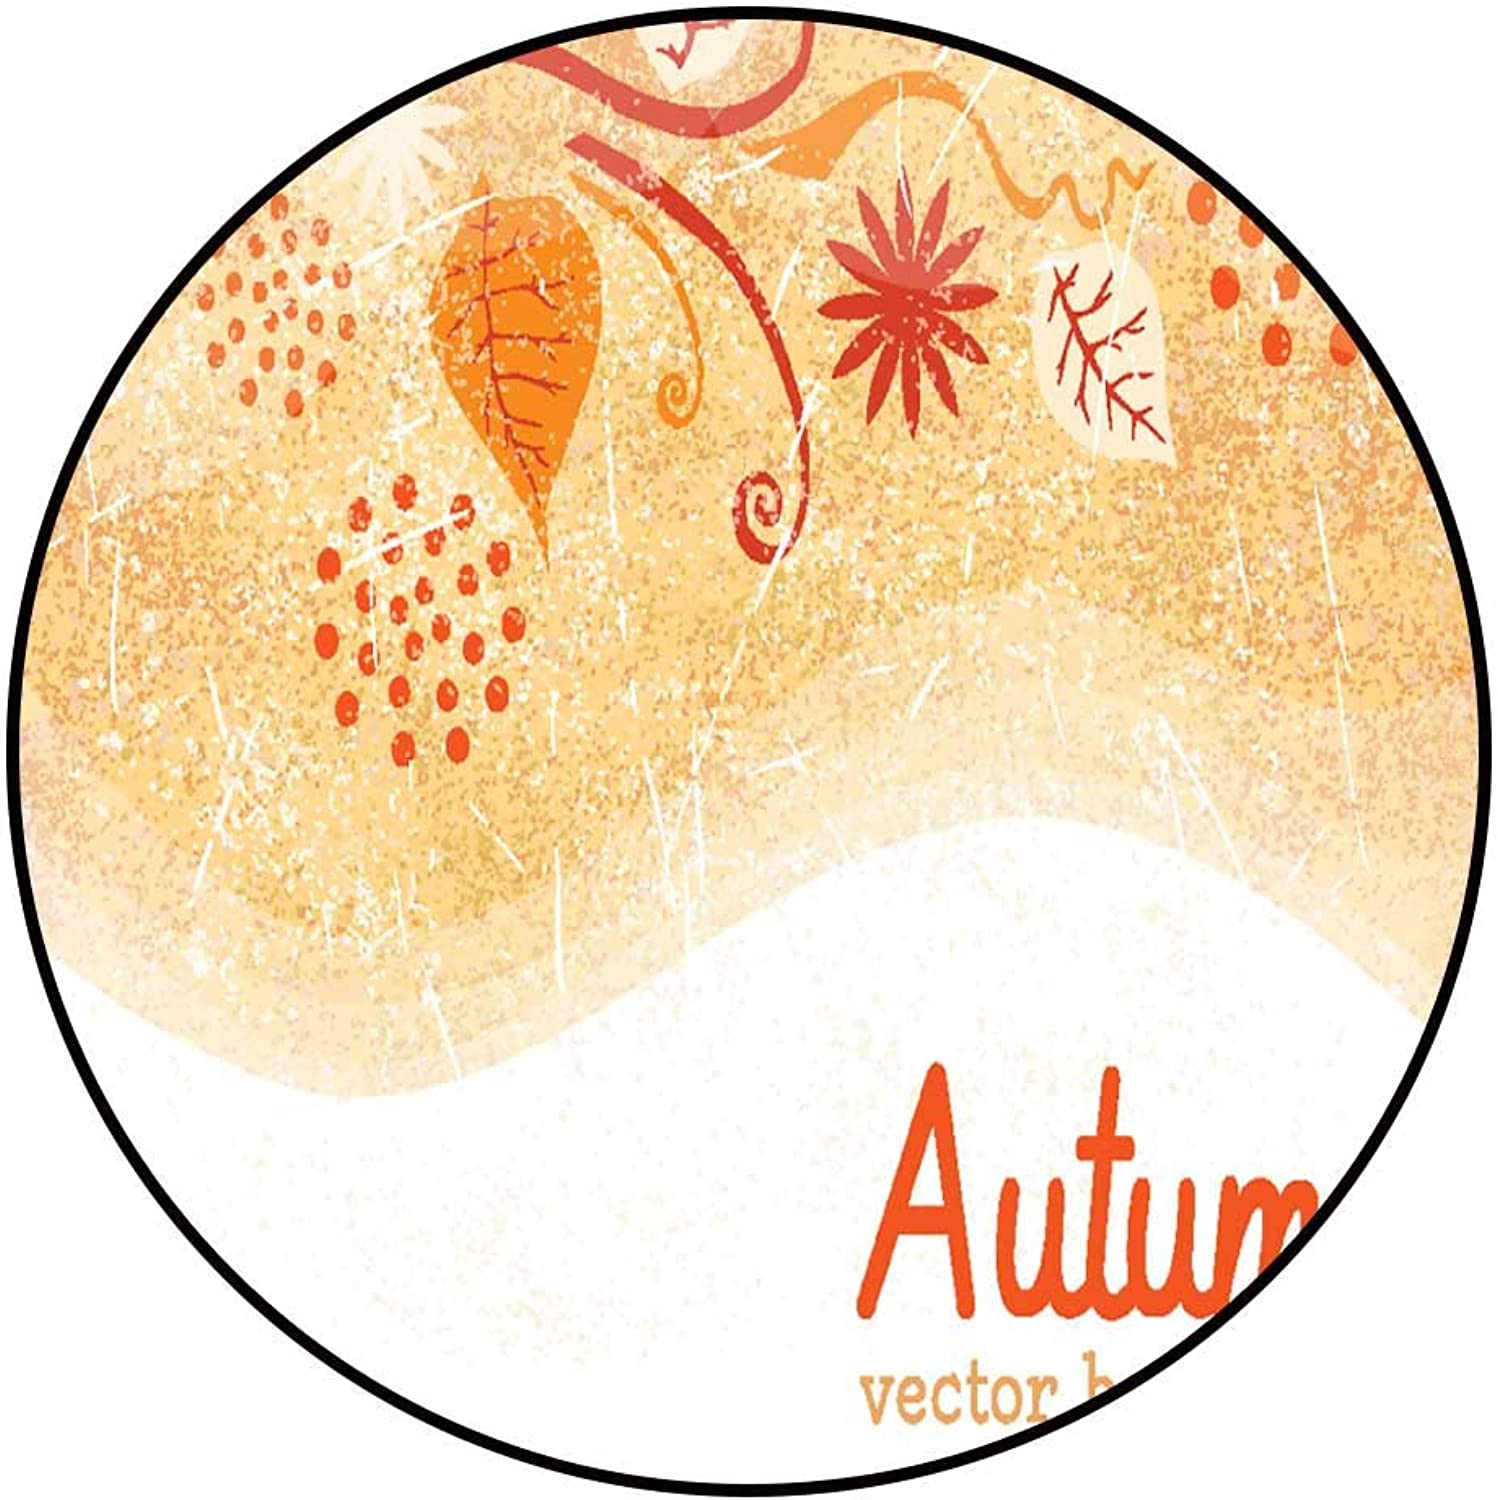 Hua Wu Chou Round Exercise matround BBQ Grill mat D4'2 1.3m Background of Stylized Autumn Leaves for Greeting cards4